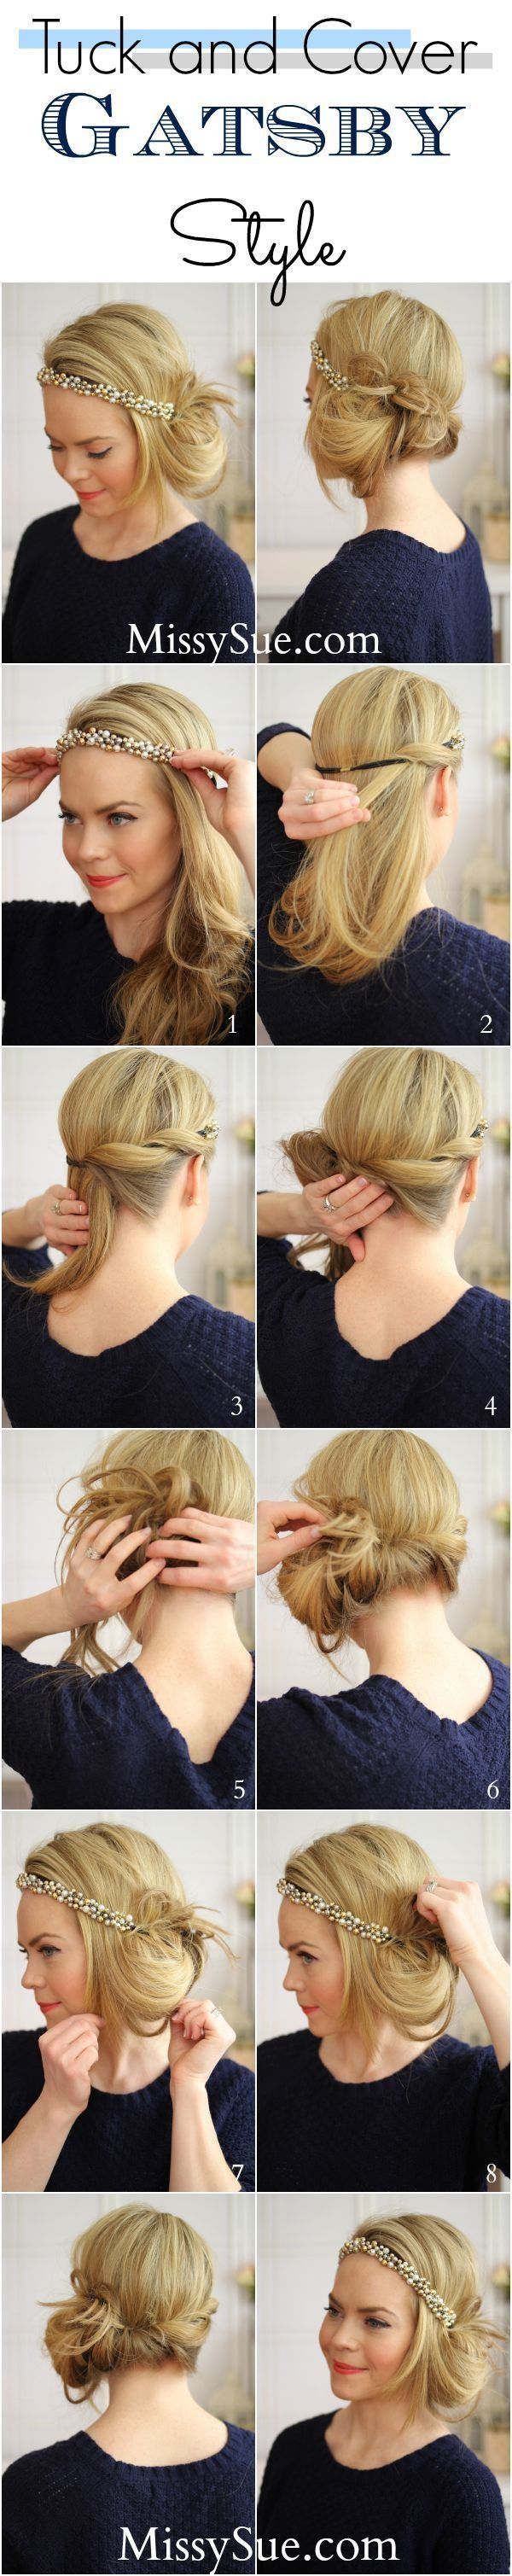 Tuck & cover Gatsby inspired style hairdo.